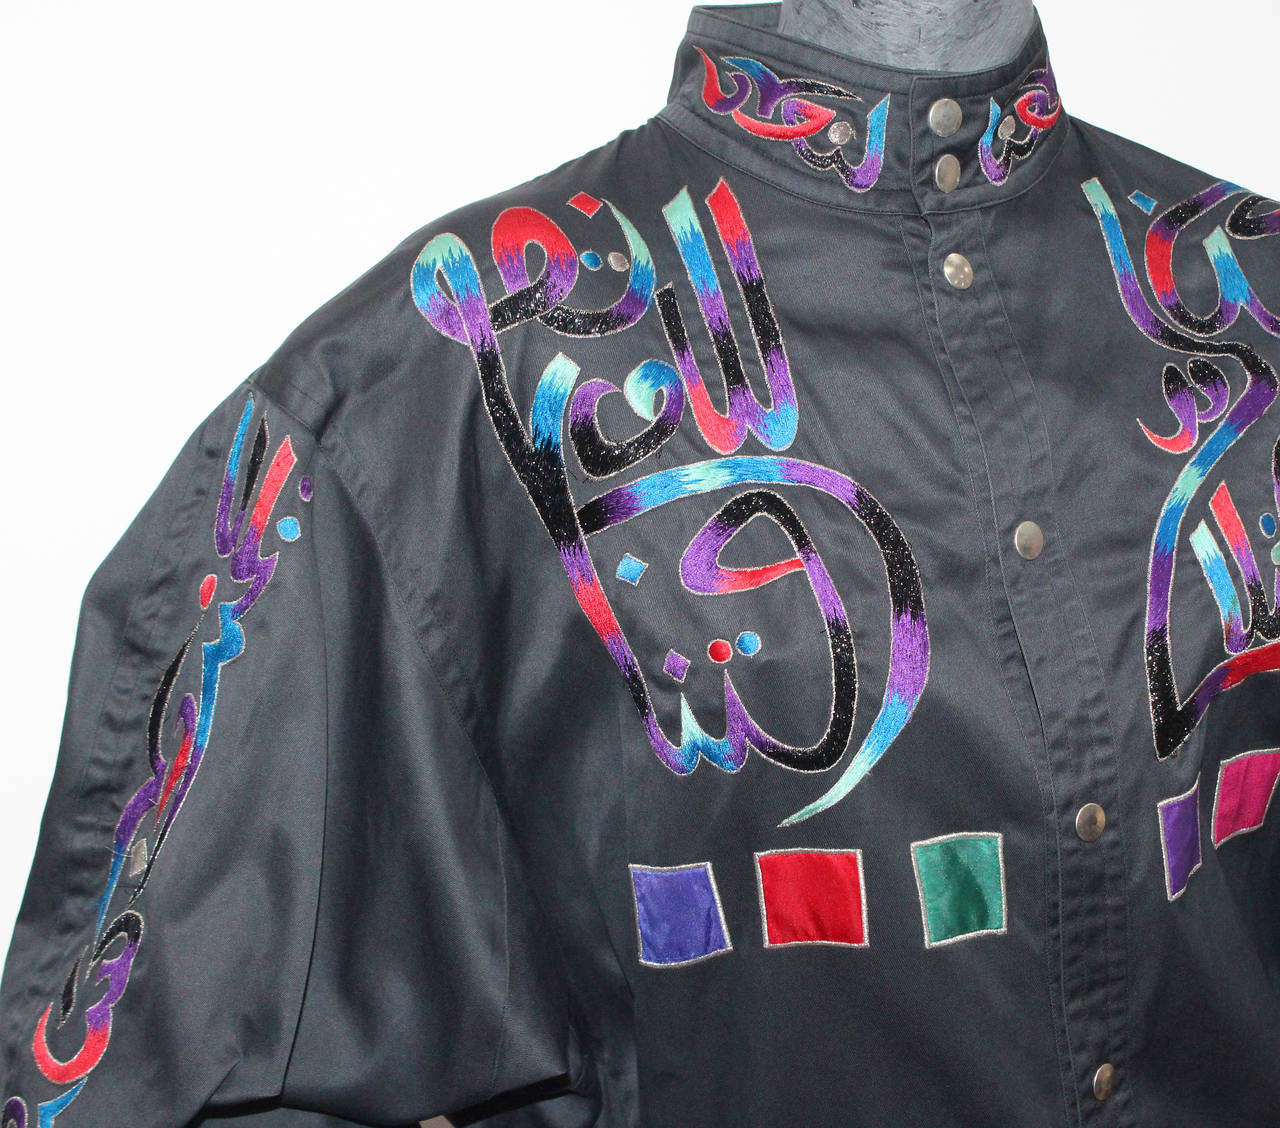 Fine and rare 1980s Kansai Yamamoto Embroidered Buddha Bomber Jacket 3